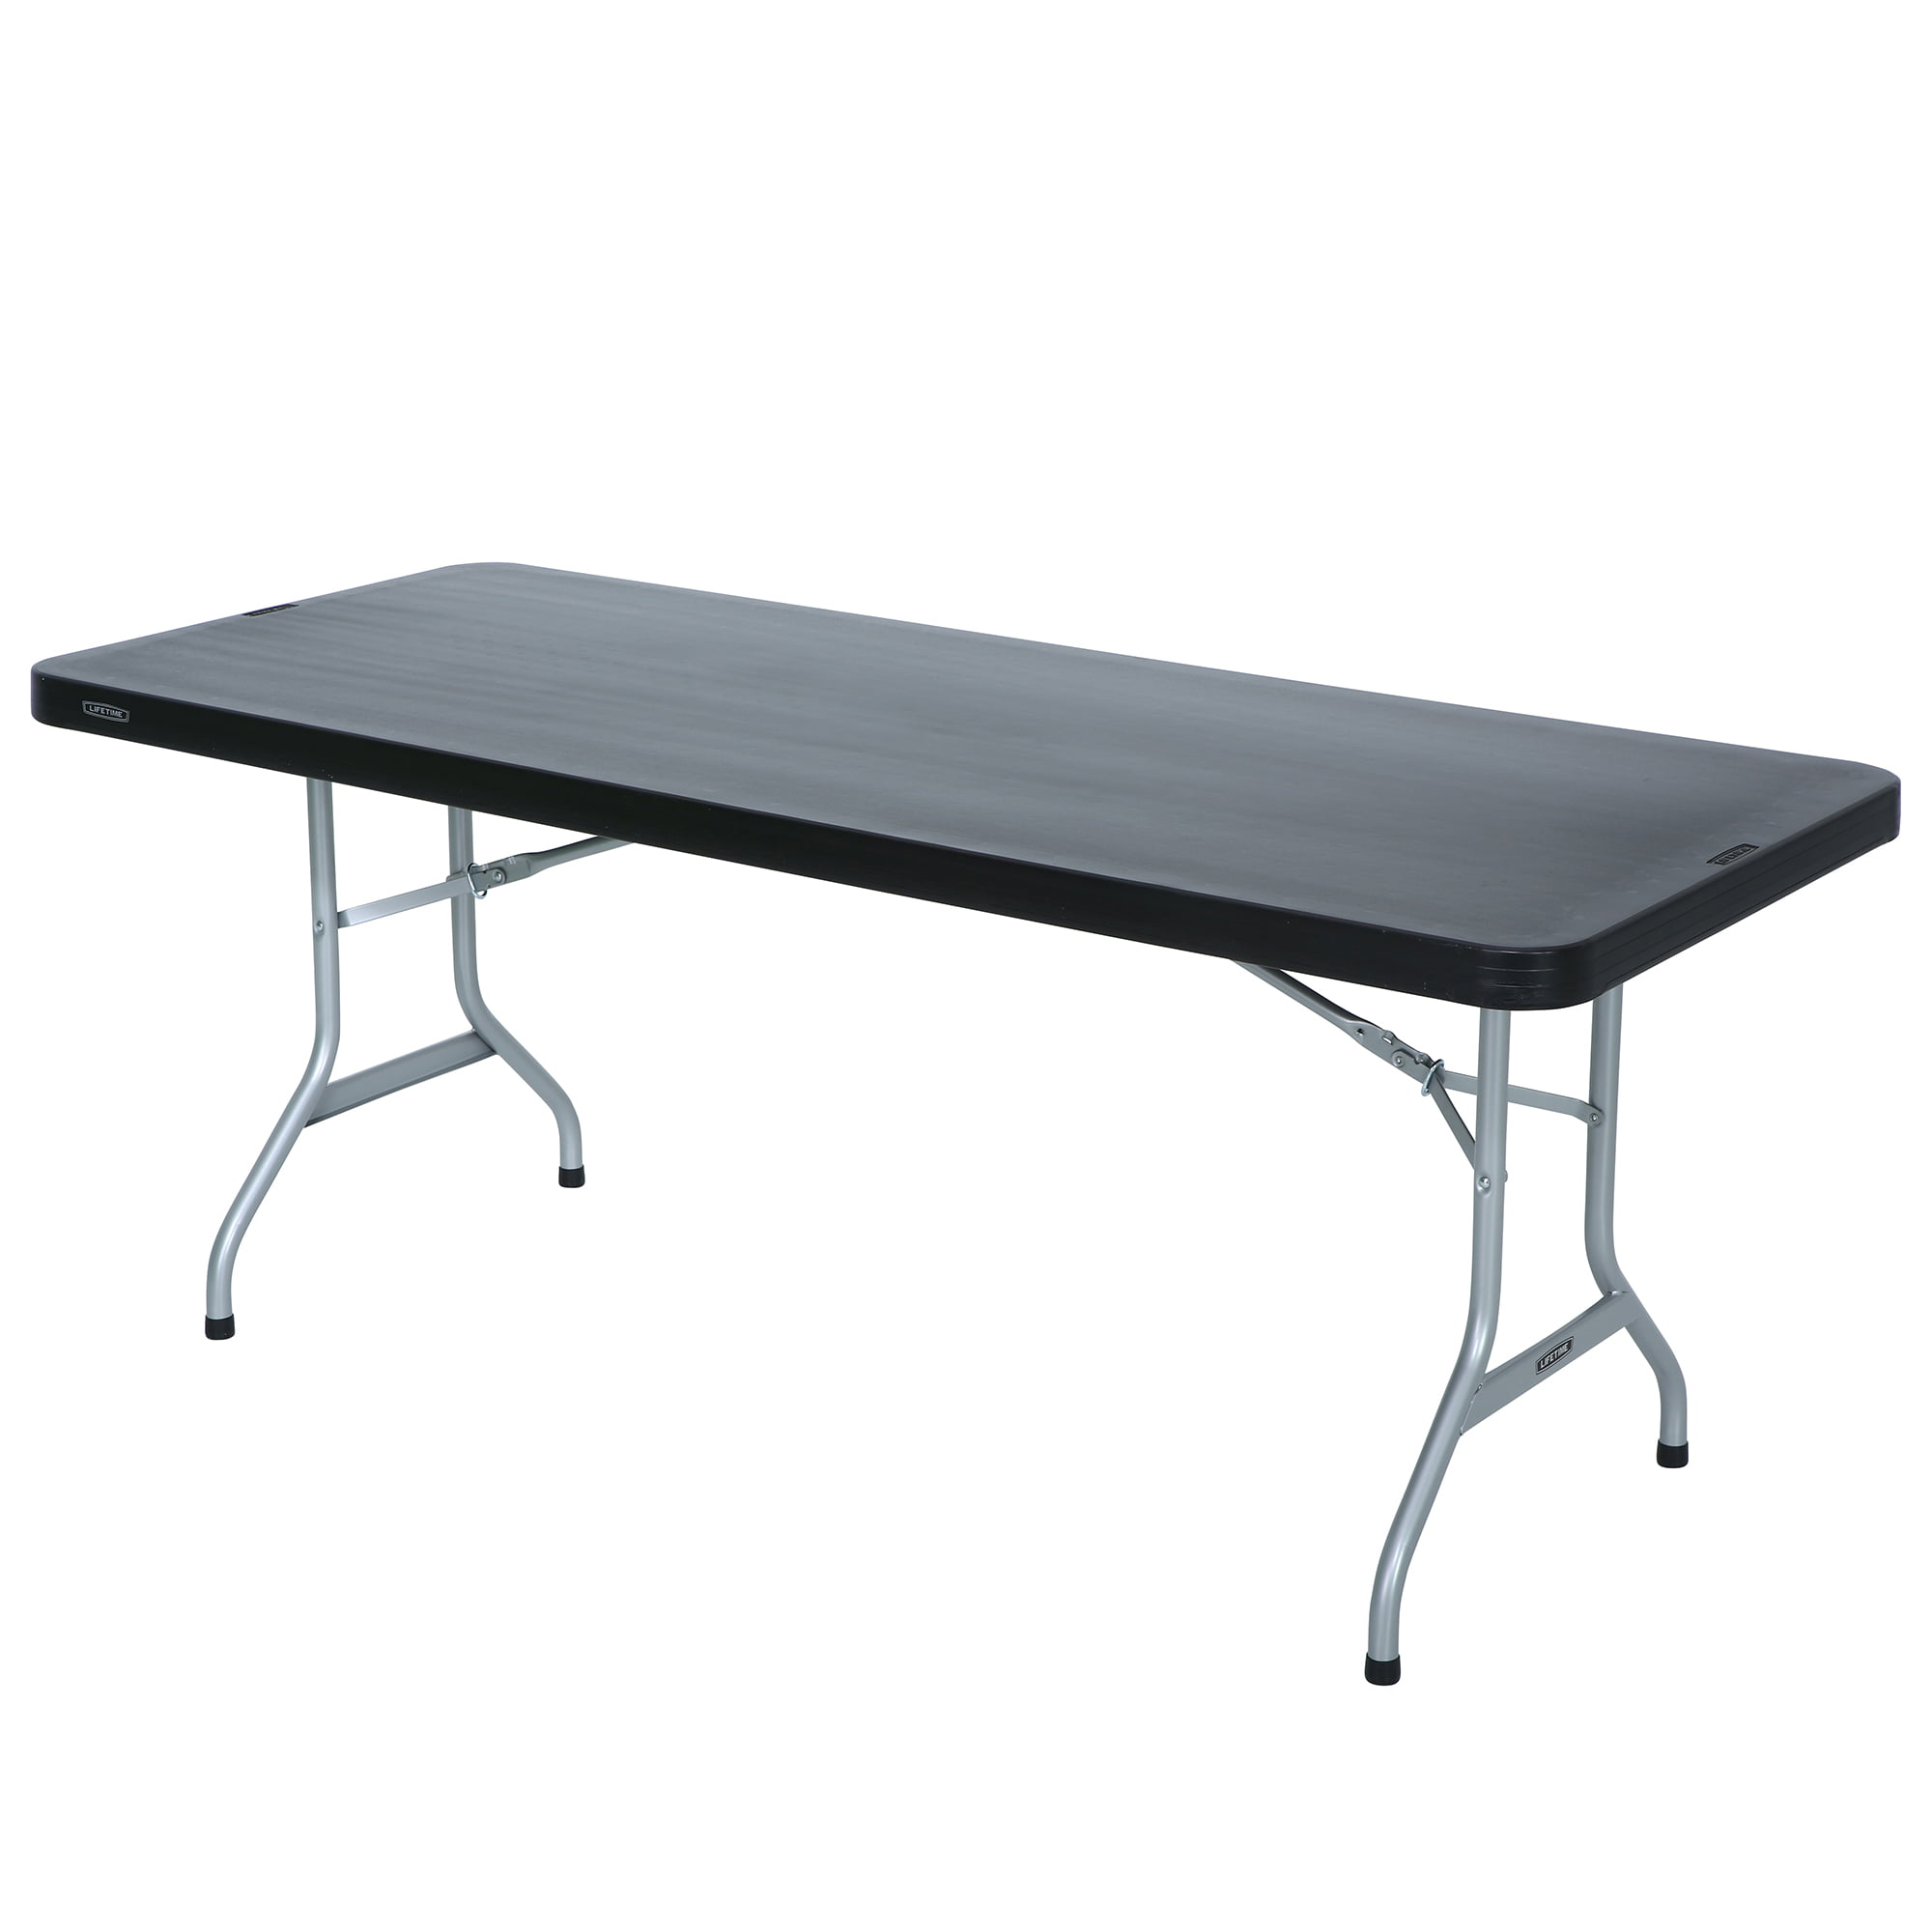 Table Walmart: Lifetime 6-Foot Folding Table, Black